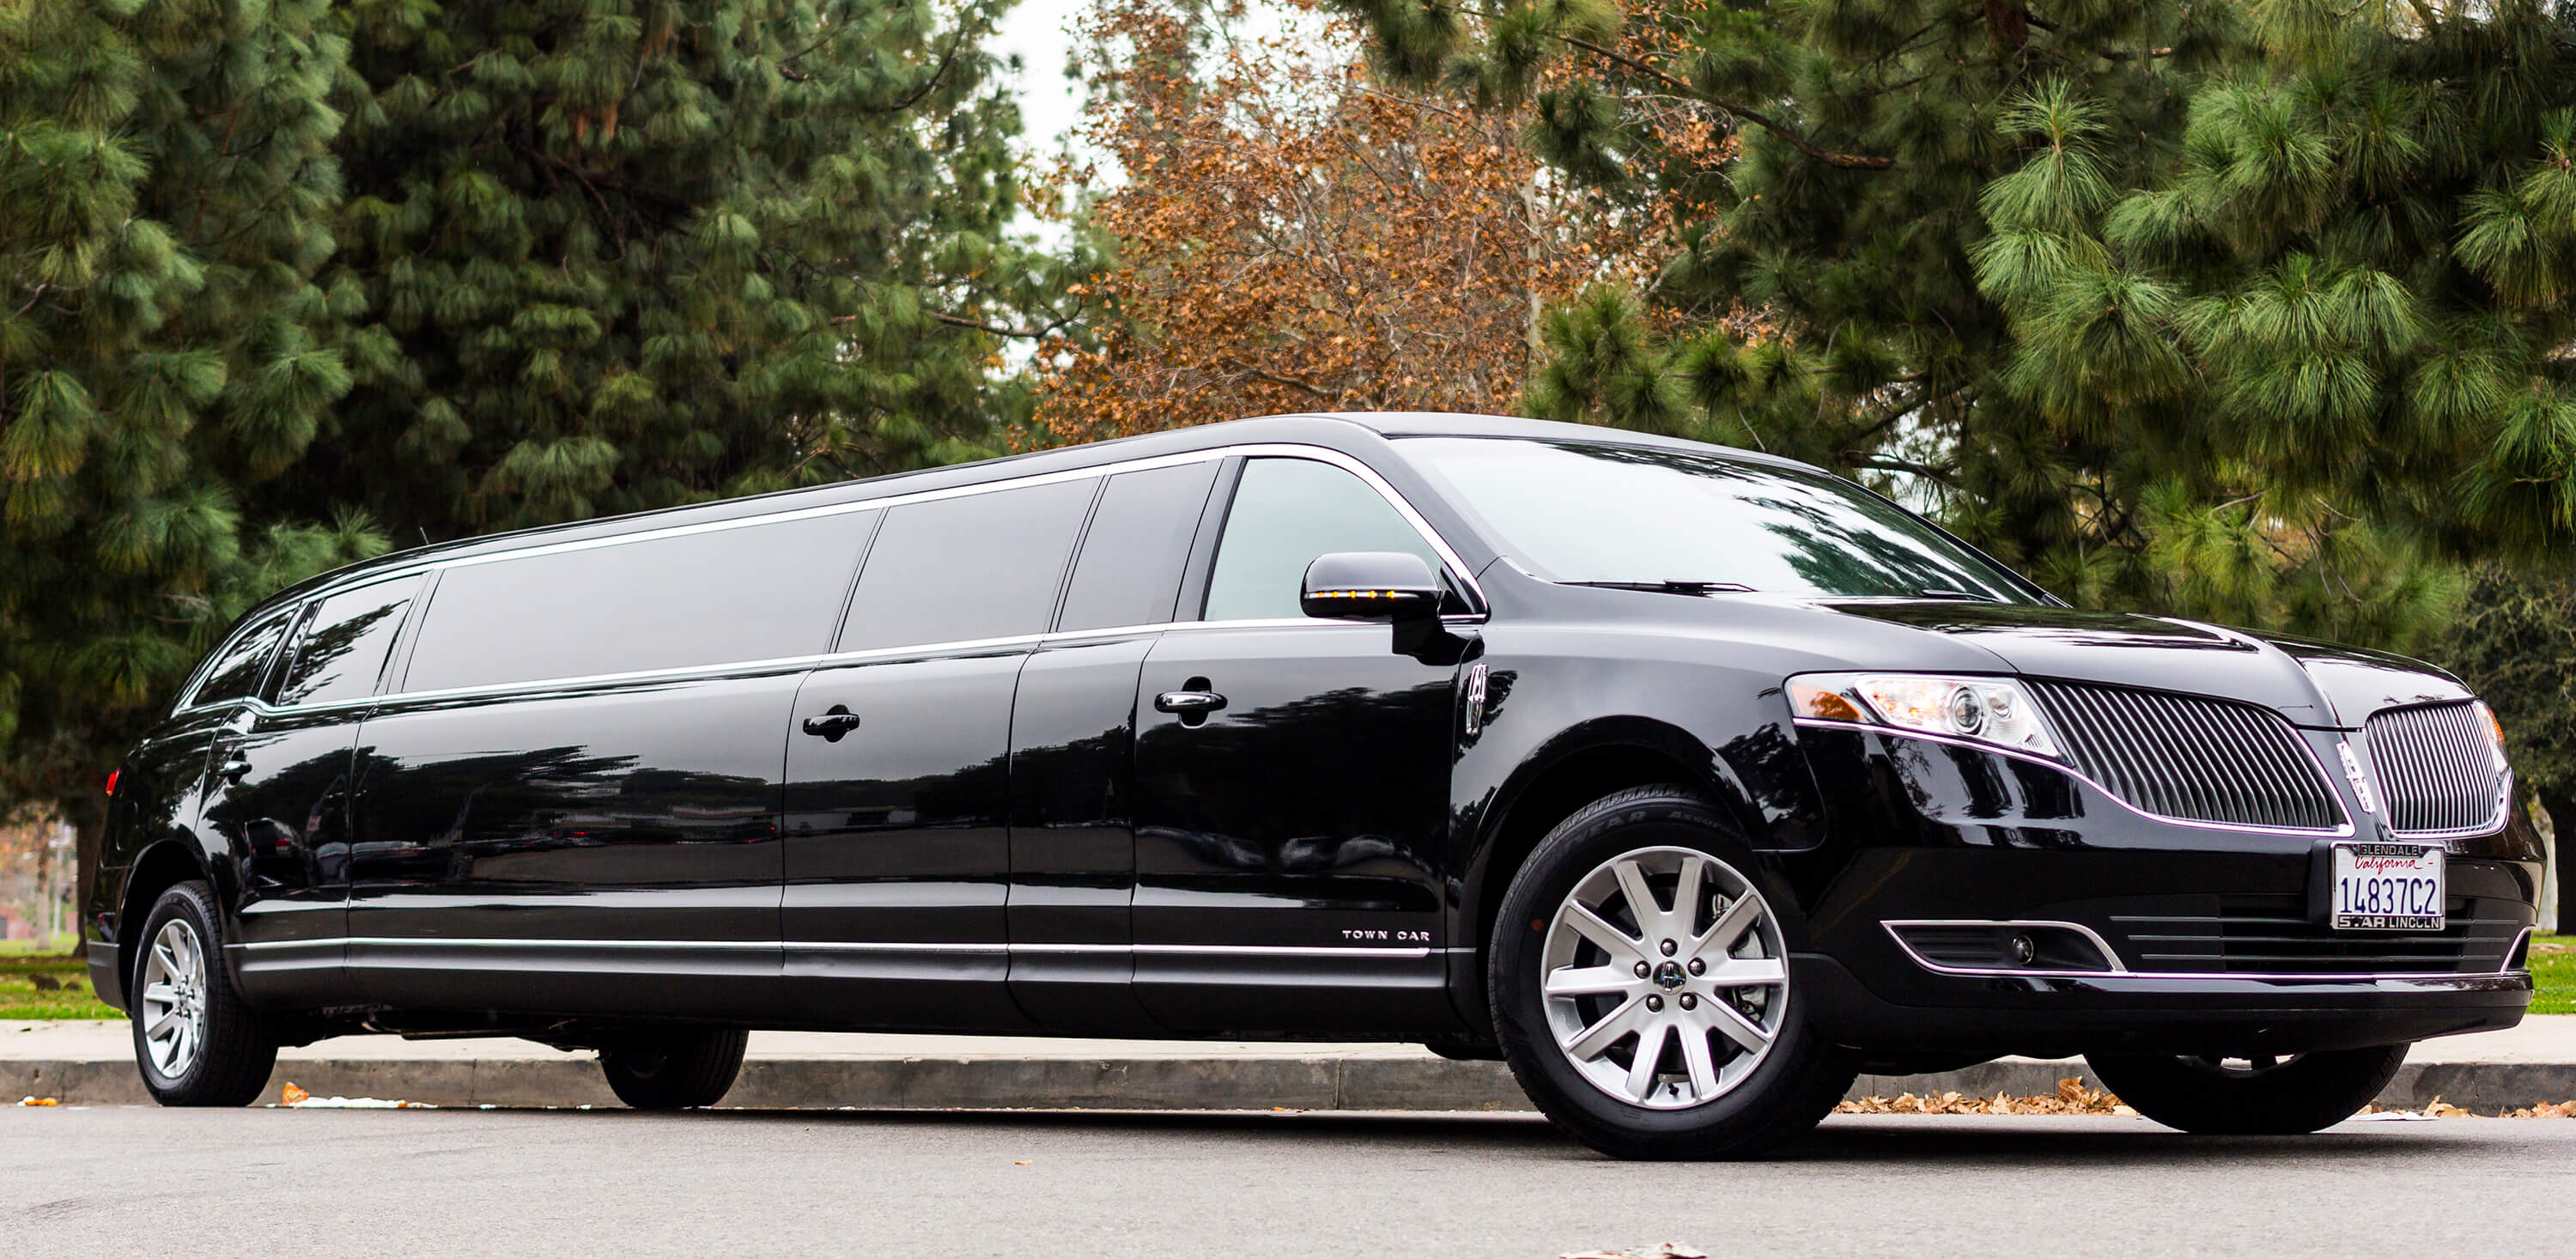 Lincoln Stretch Limousine Ae Worldwide Limousine